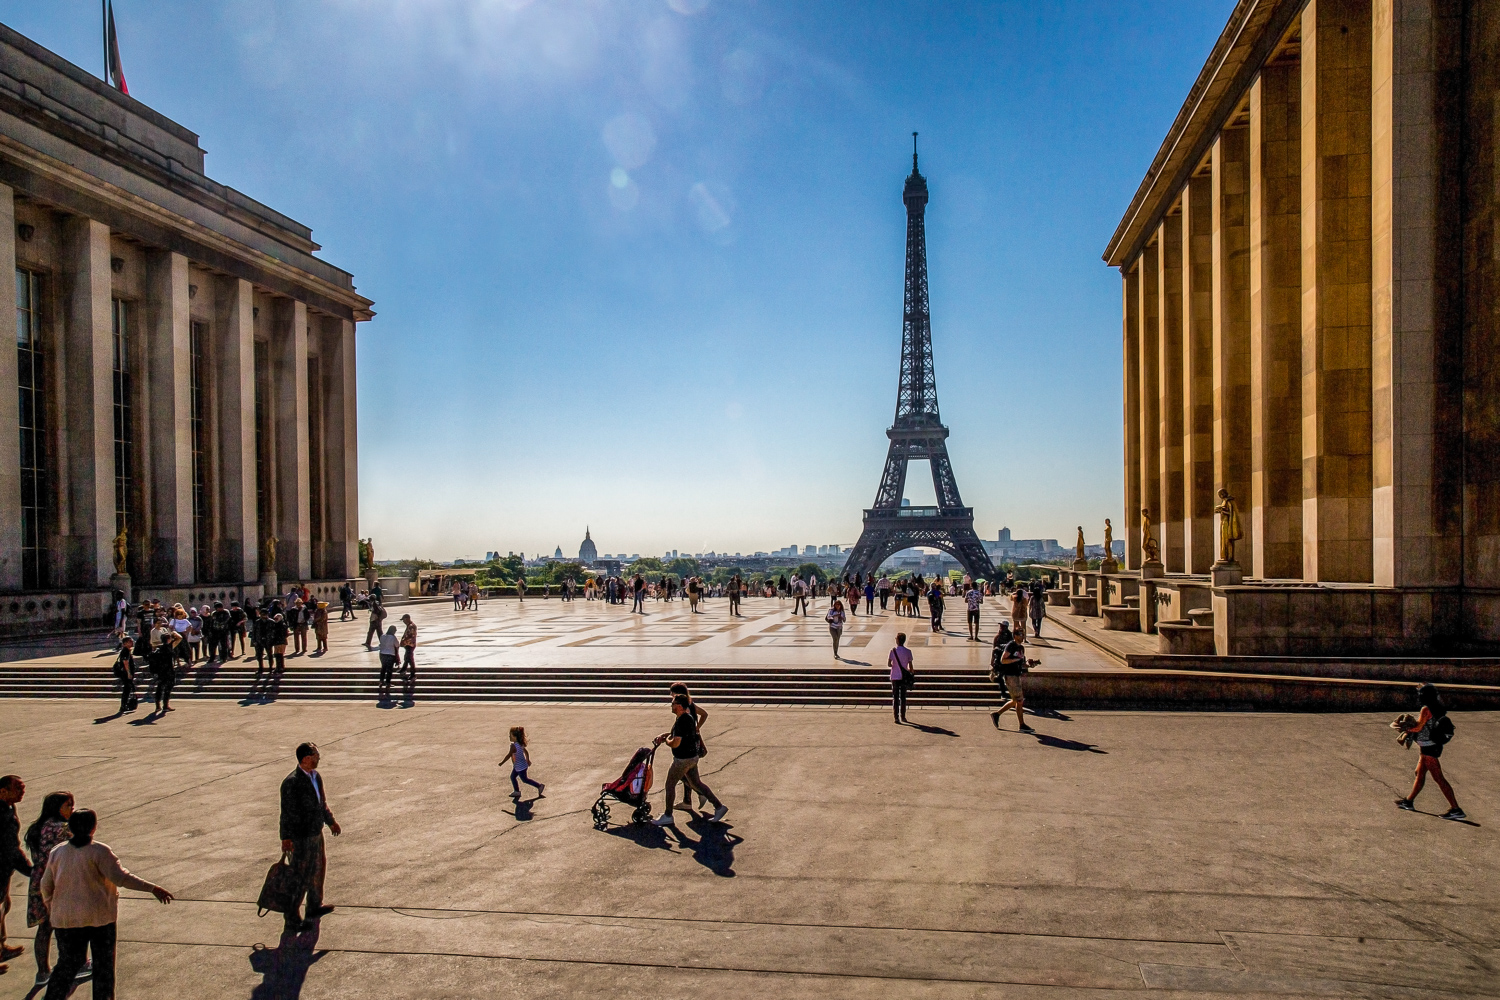 Eiffel-Tower-Trocadero-Plaza-THIS.jpg